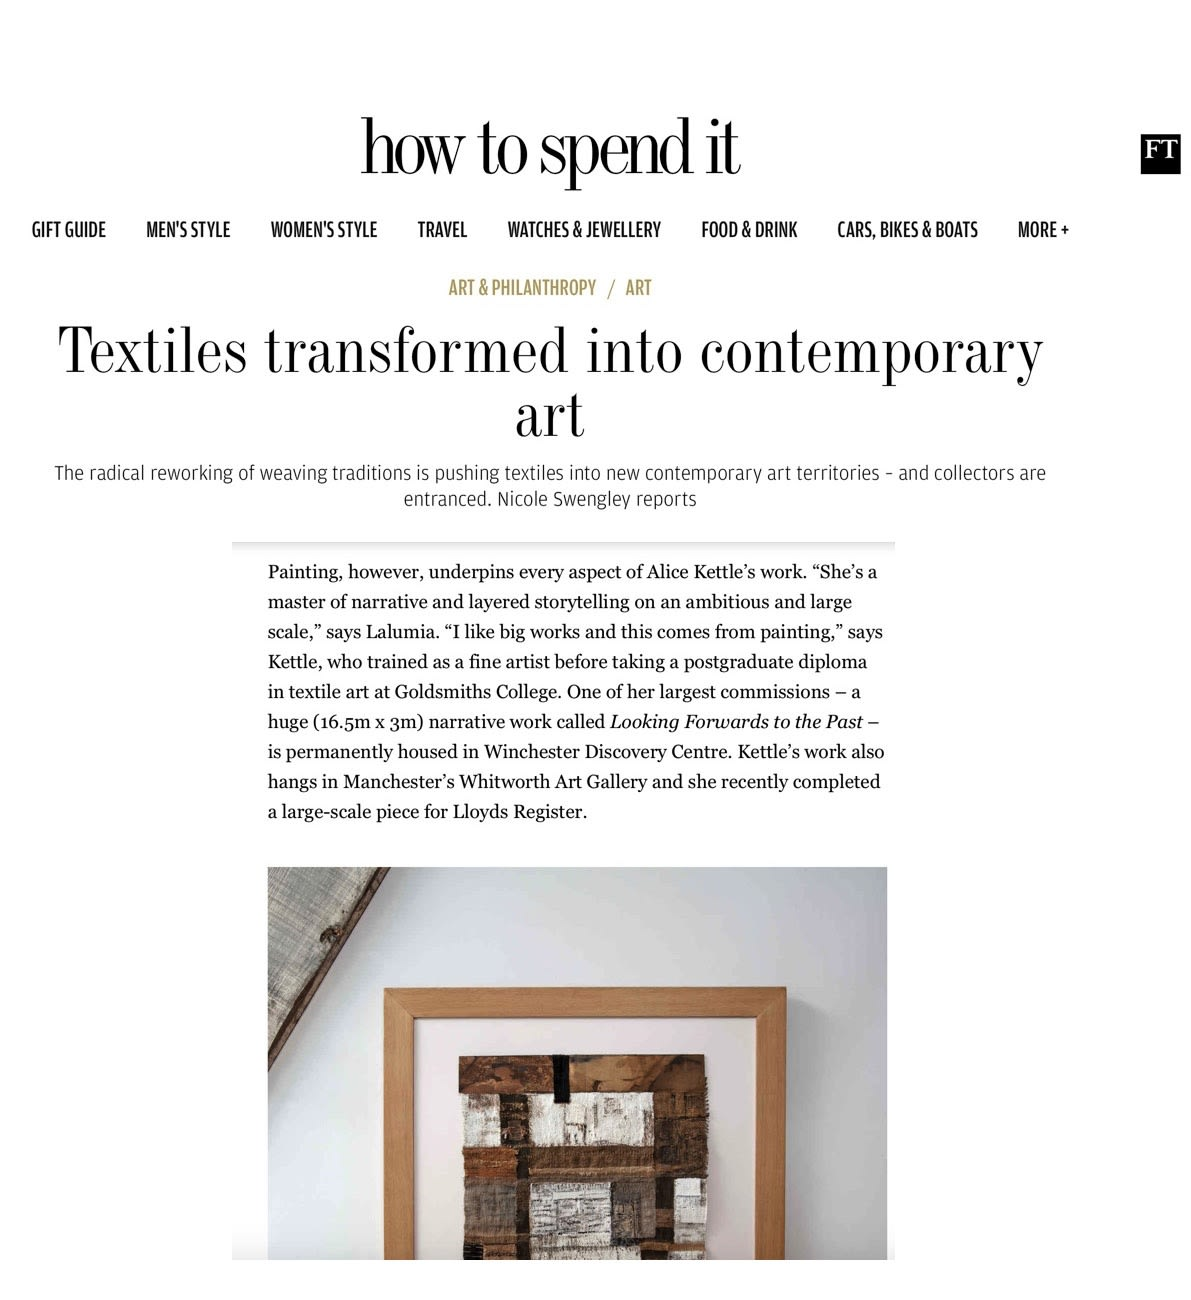 FT How to Spend It - Textiles transformed into contemporary art